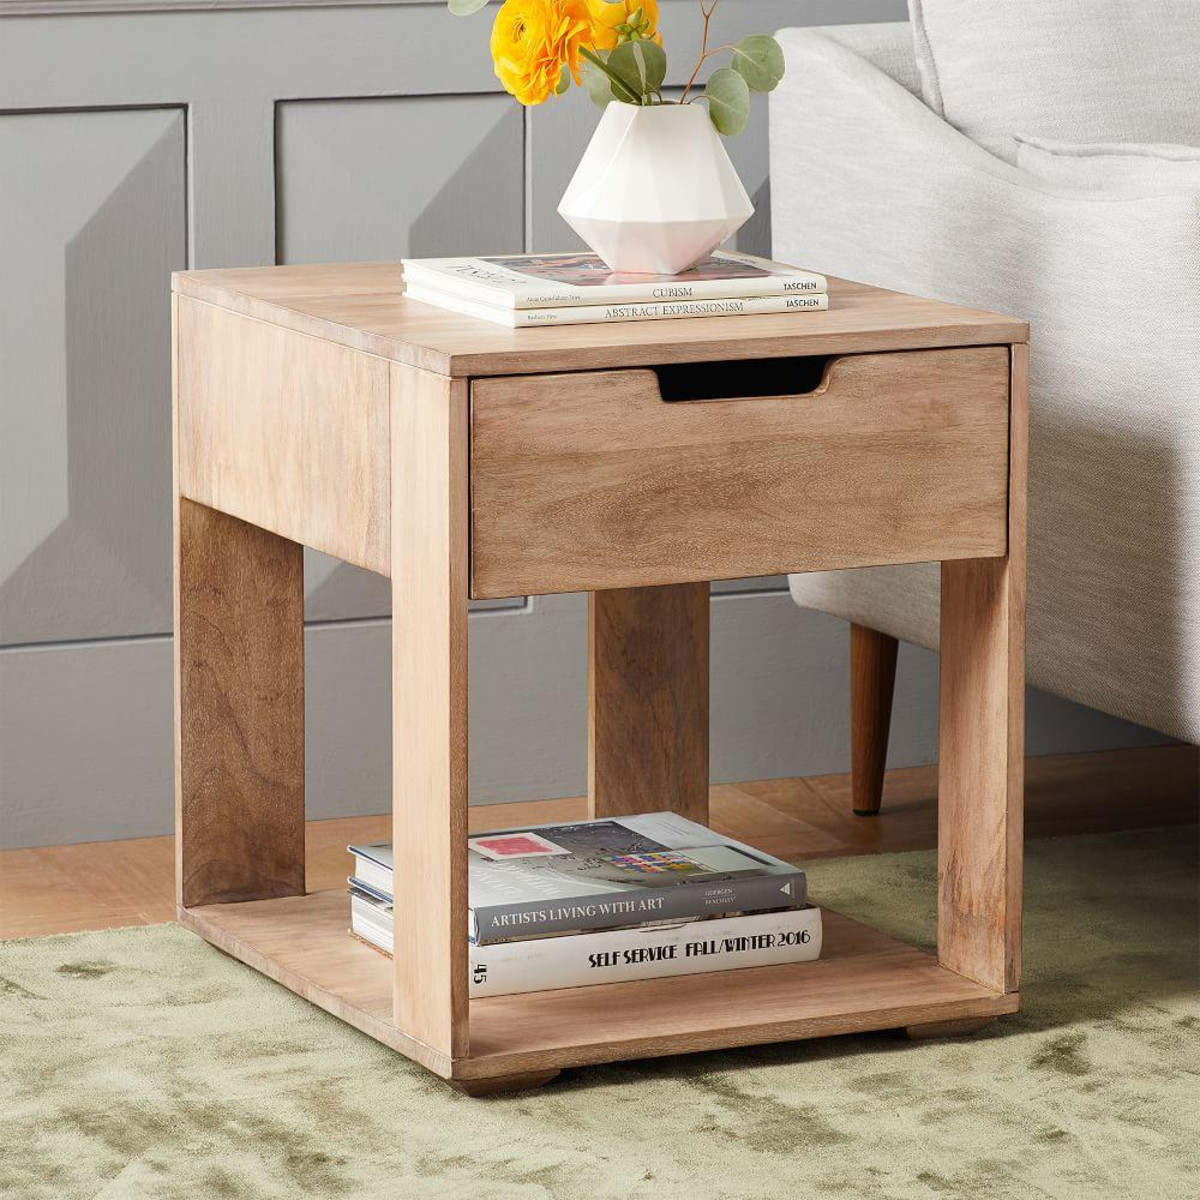 pure storage side table whitewash west elm media accent antique marble top small night lamps space saver oriental wedding linens red wood washer dryer chinese style lamp shades